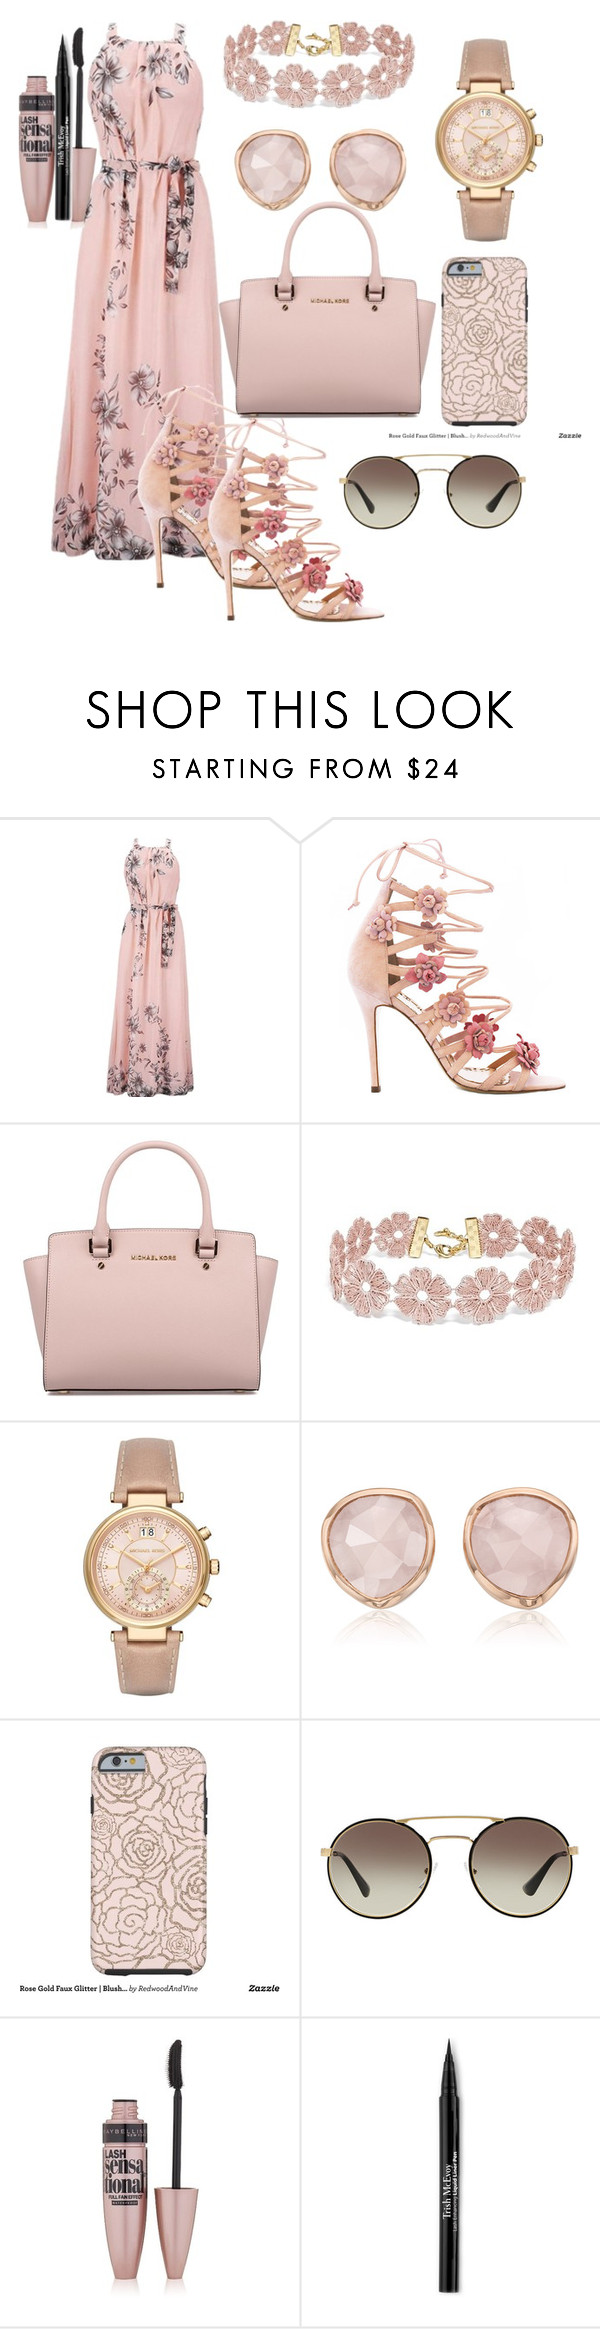 """""""Untitled #1"""" by ee69 ❤ liked on Polyvore featuring Marchesa, Michael Kors, BaubleBar, Monica Vinader, Prada, Maybelline and Trish McEvoy"""